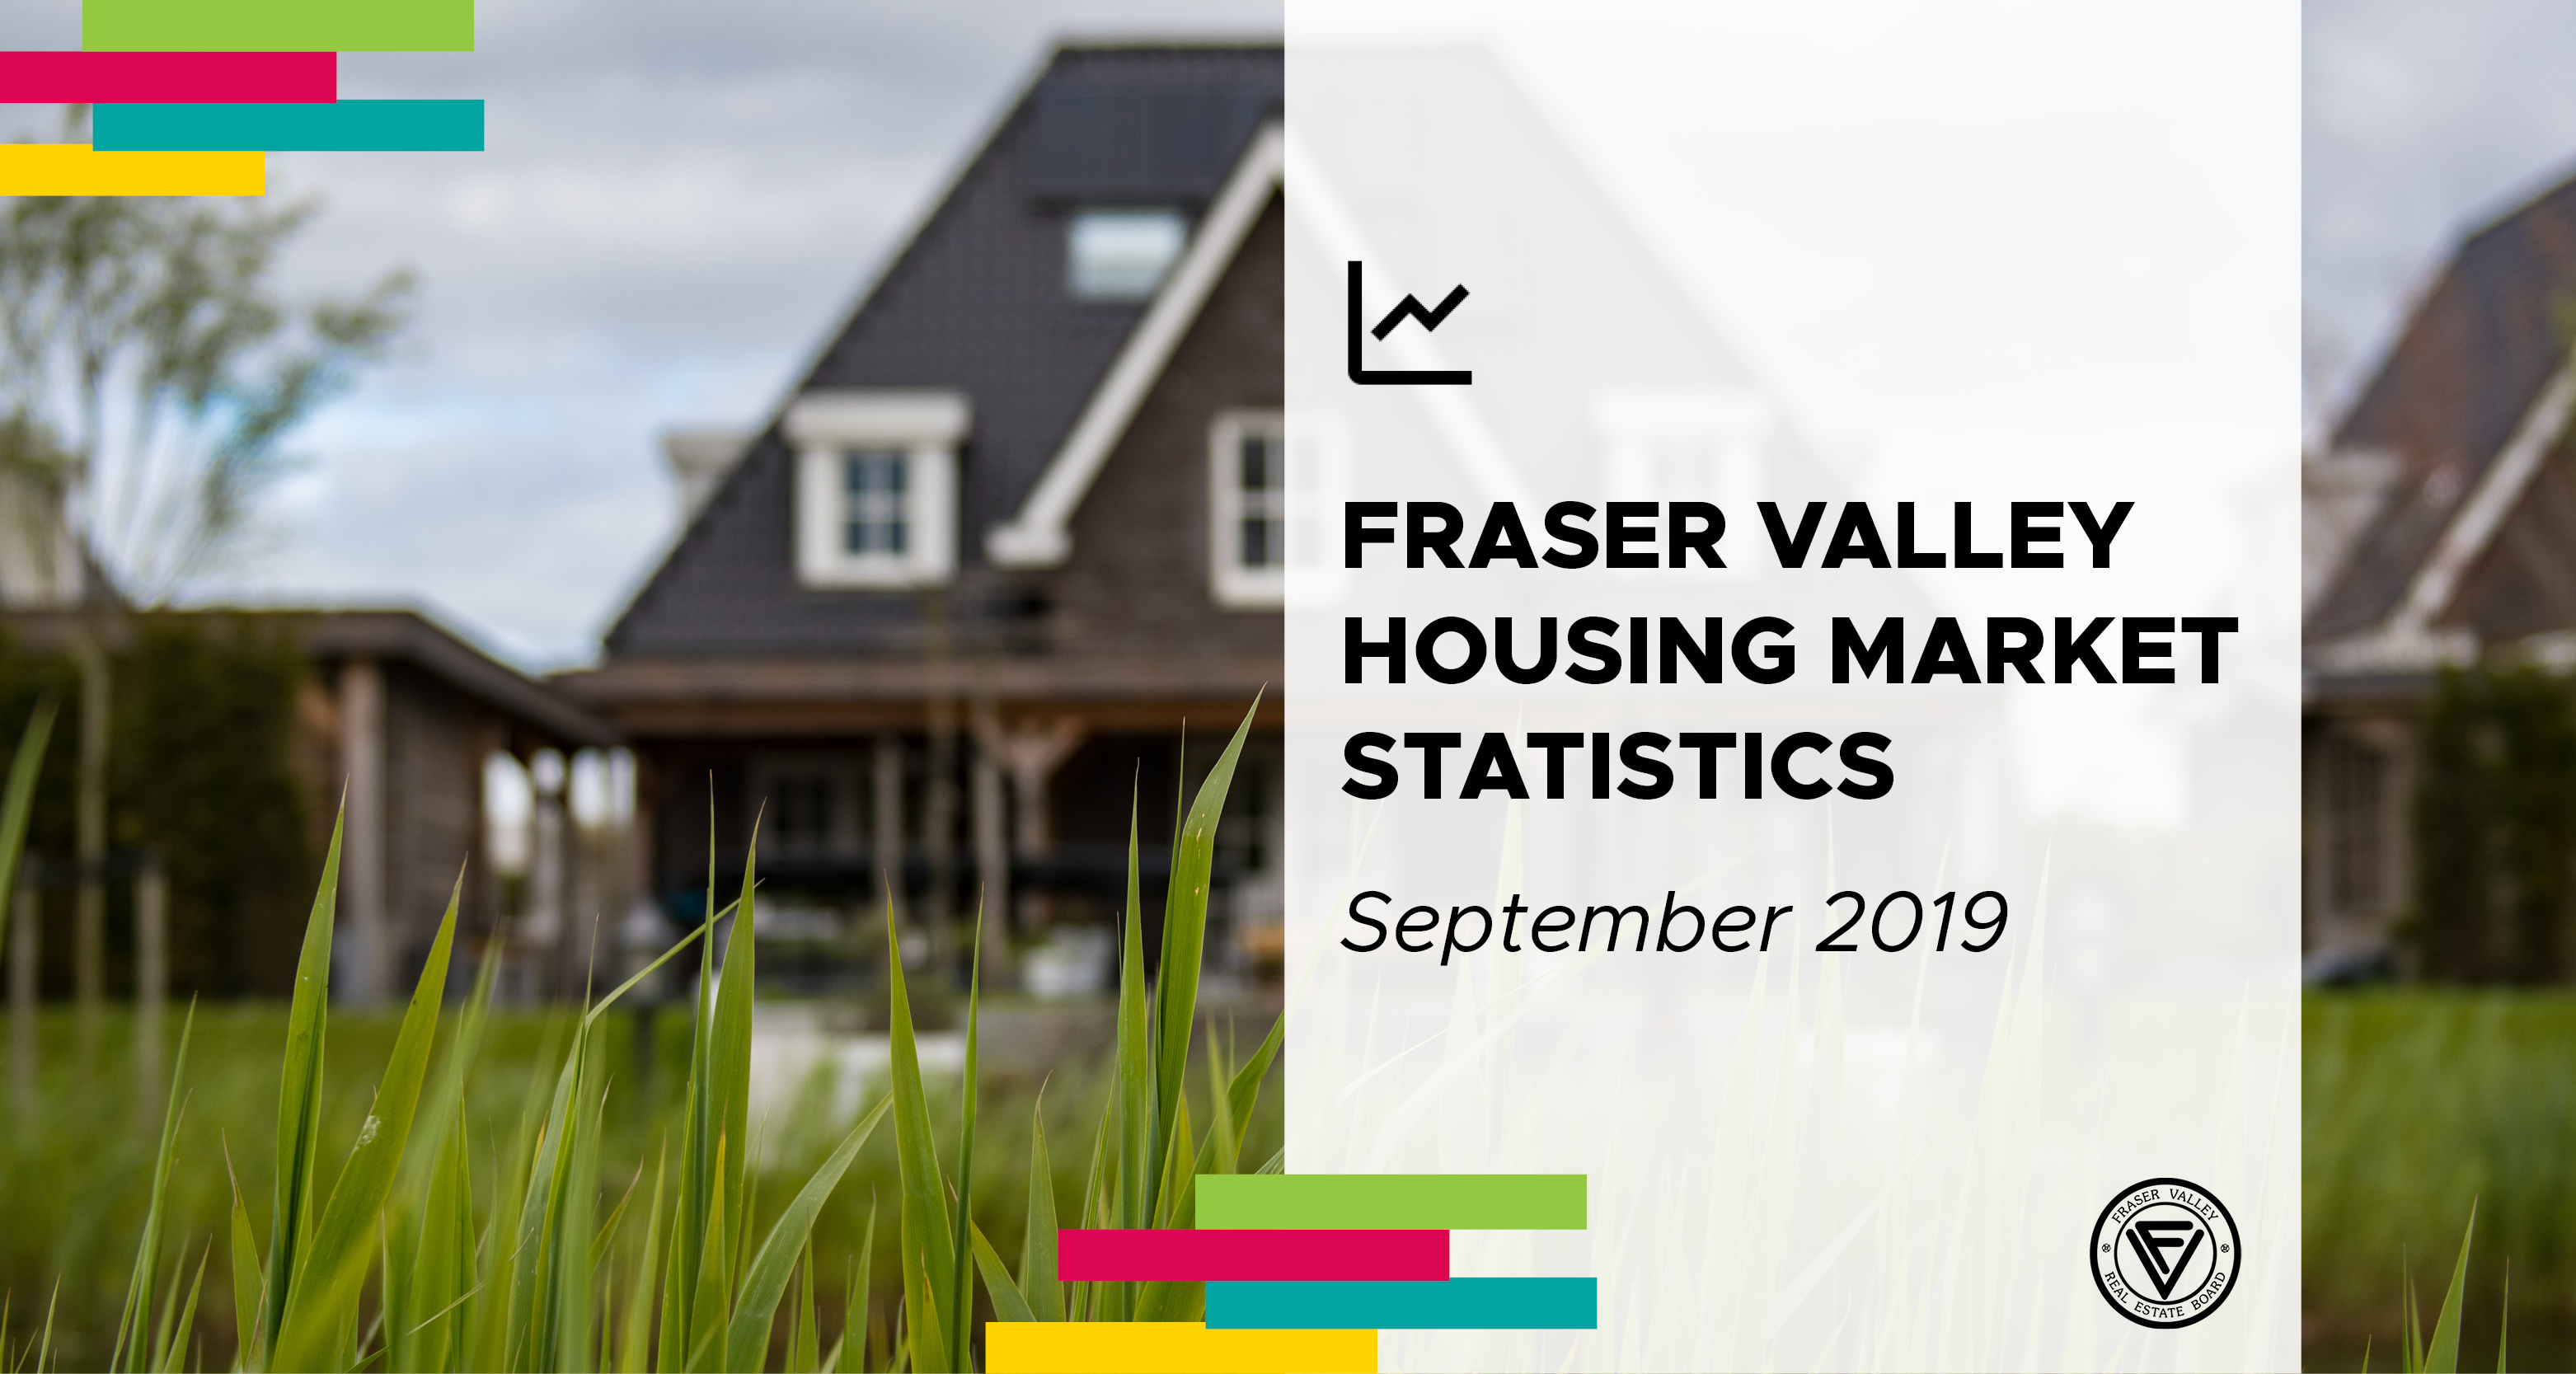 Property sales in Fraser Valley have recovered bringing market into balance